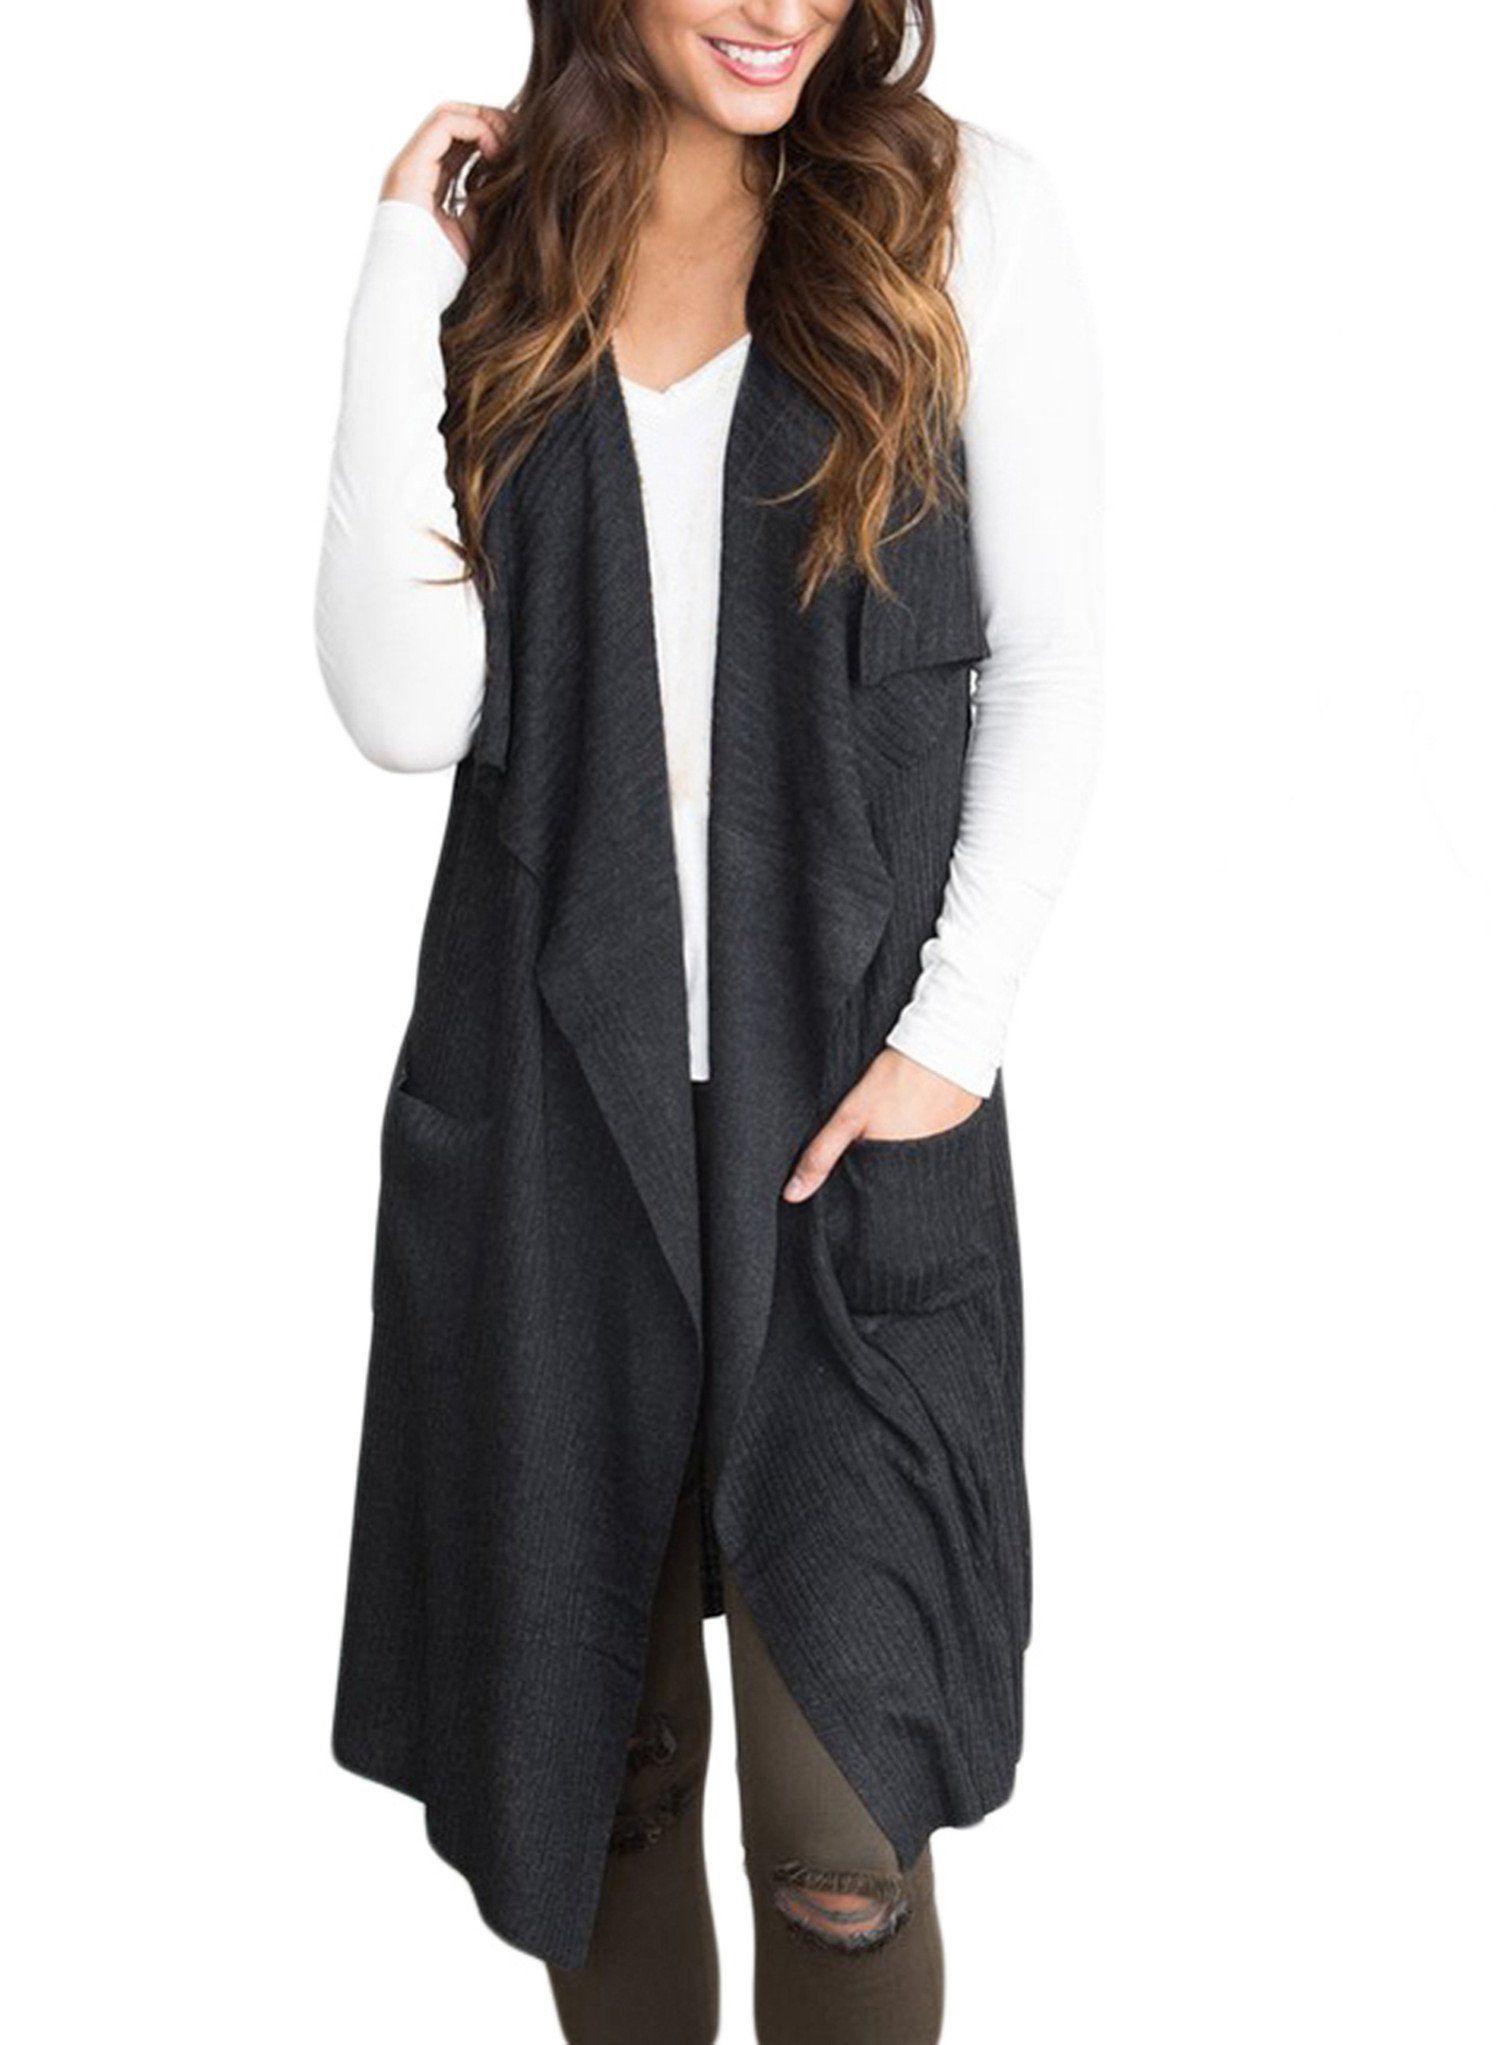 Sidefeel Women Sleeveless Open Front Knitted Long Cardigan Sweater Vest Pocket XX-Large Black by Sidefeel (Image #1)